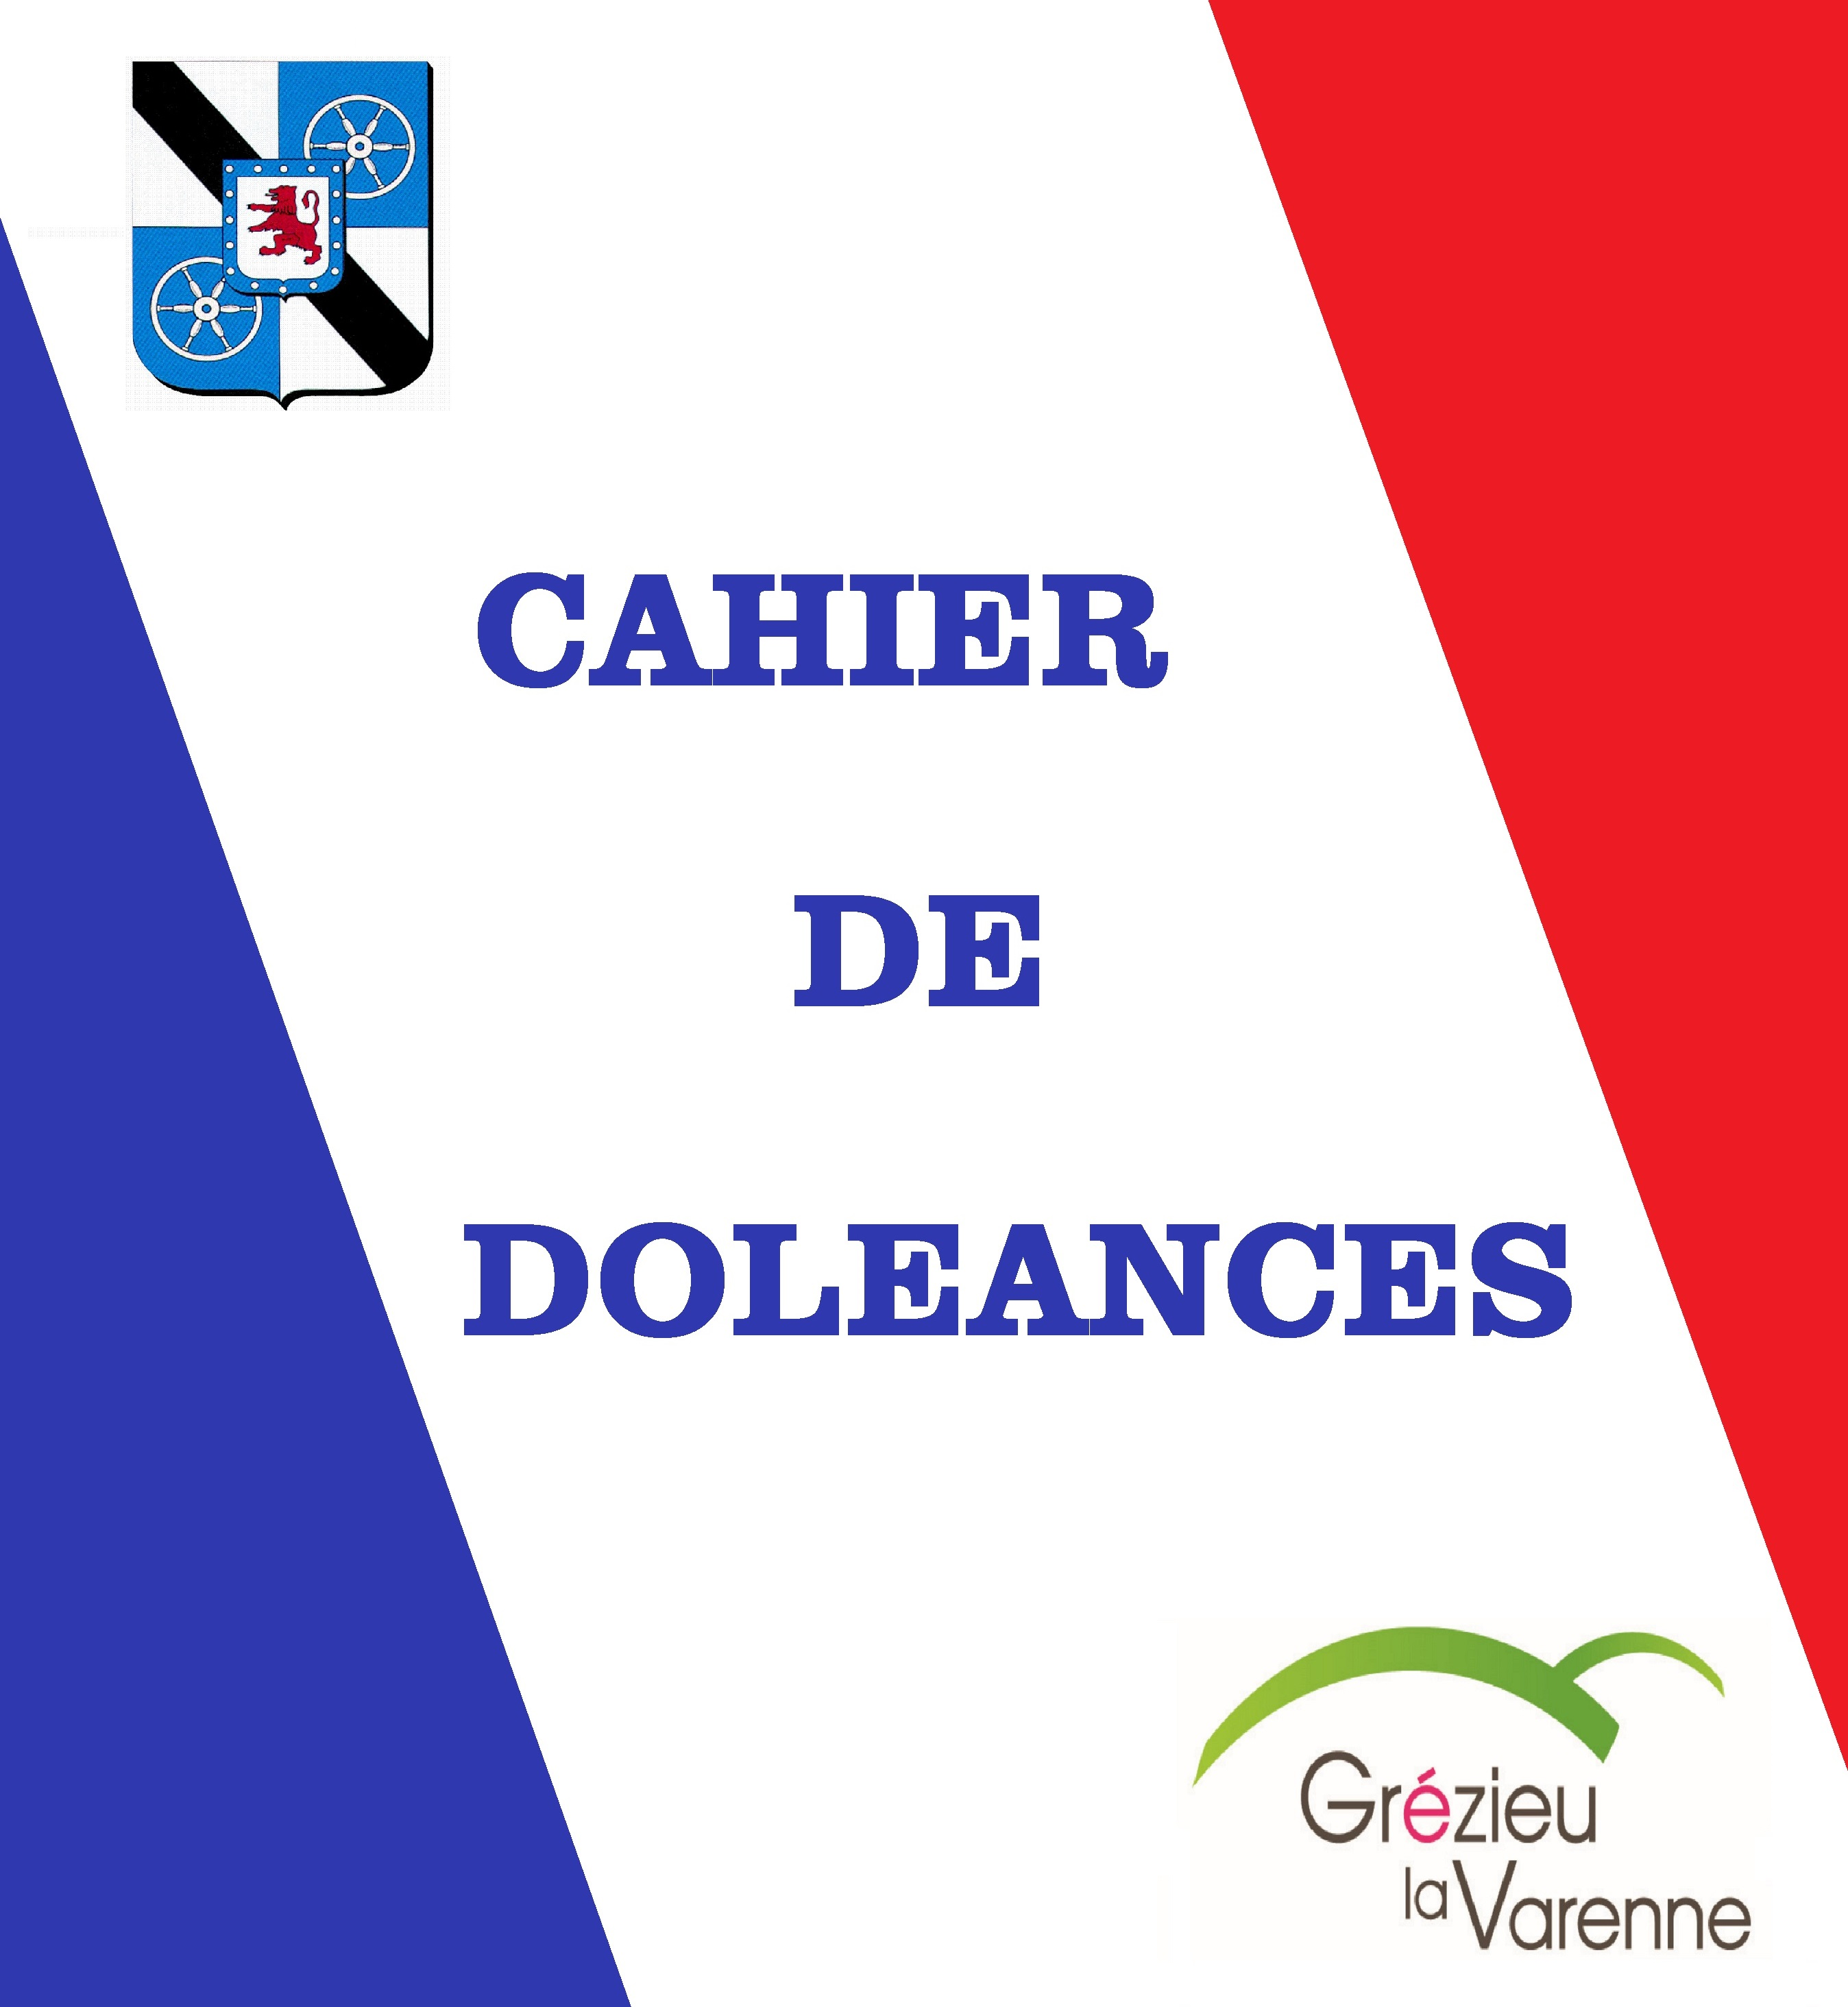 cahier doleance